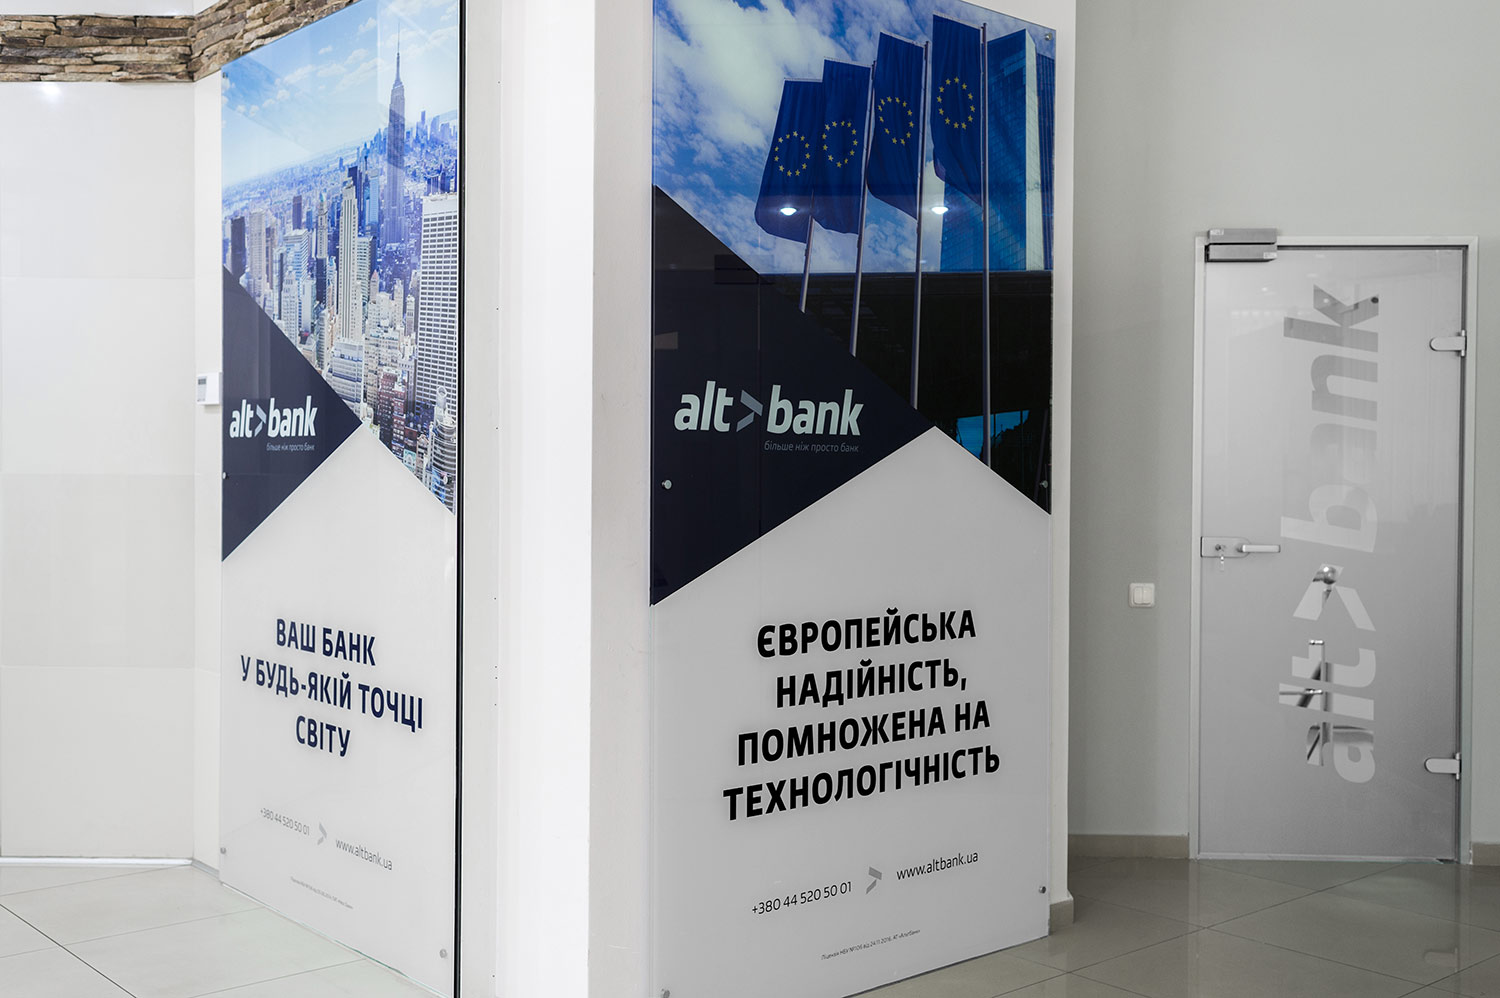 The corporate image of Altbank. Bank branches Altbank. Posters in the interior.